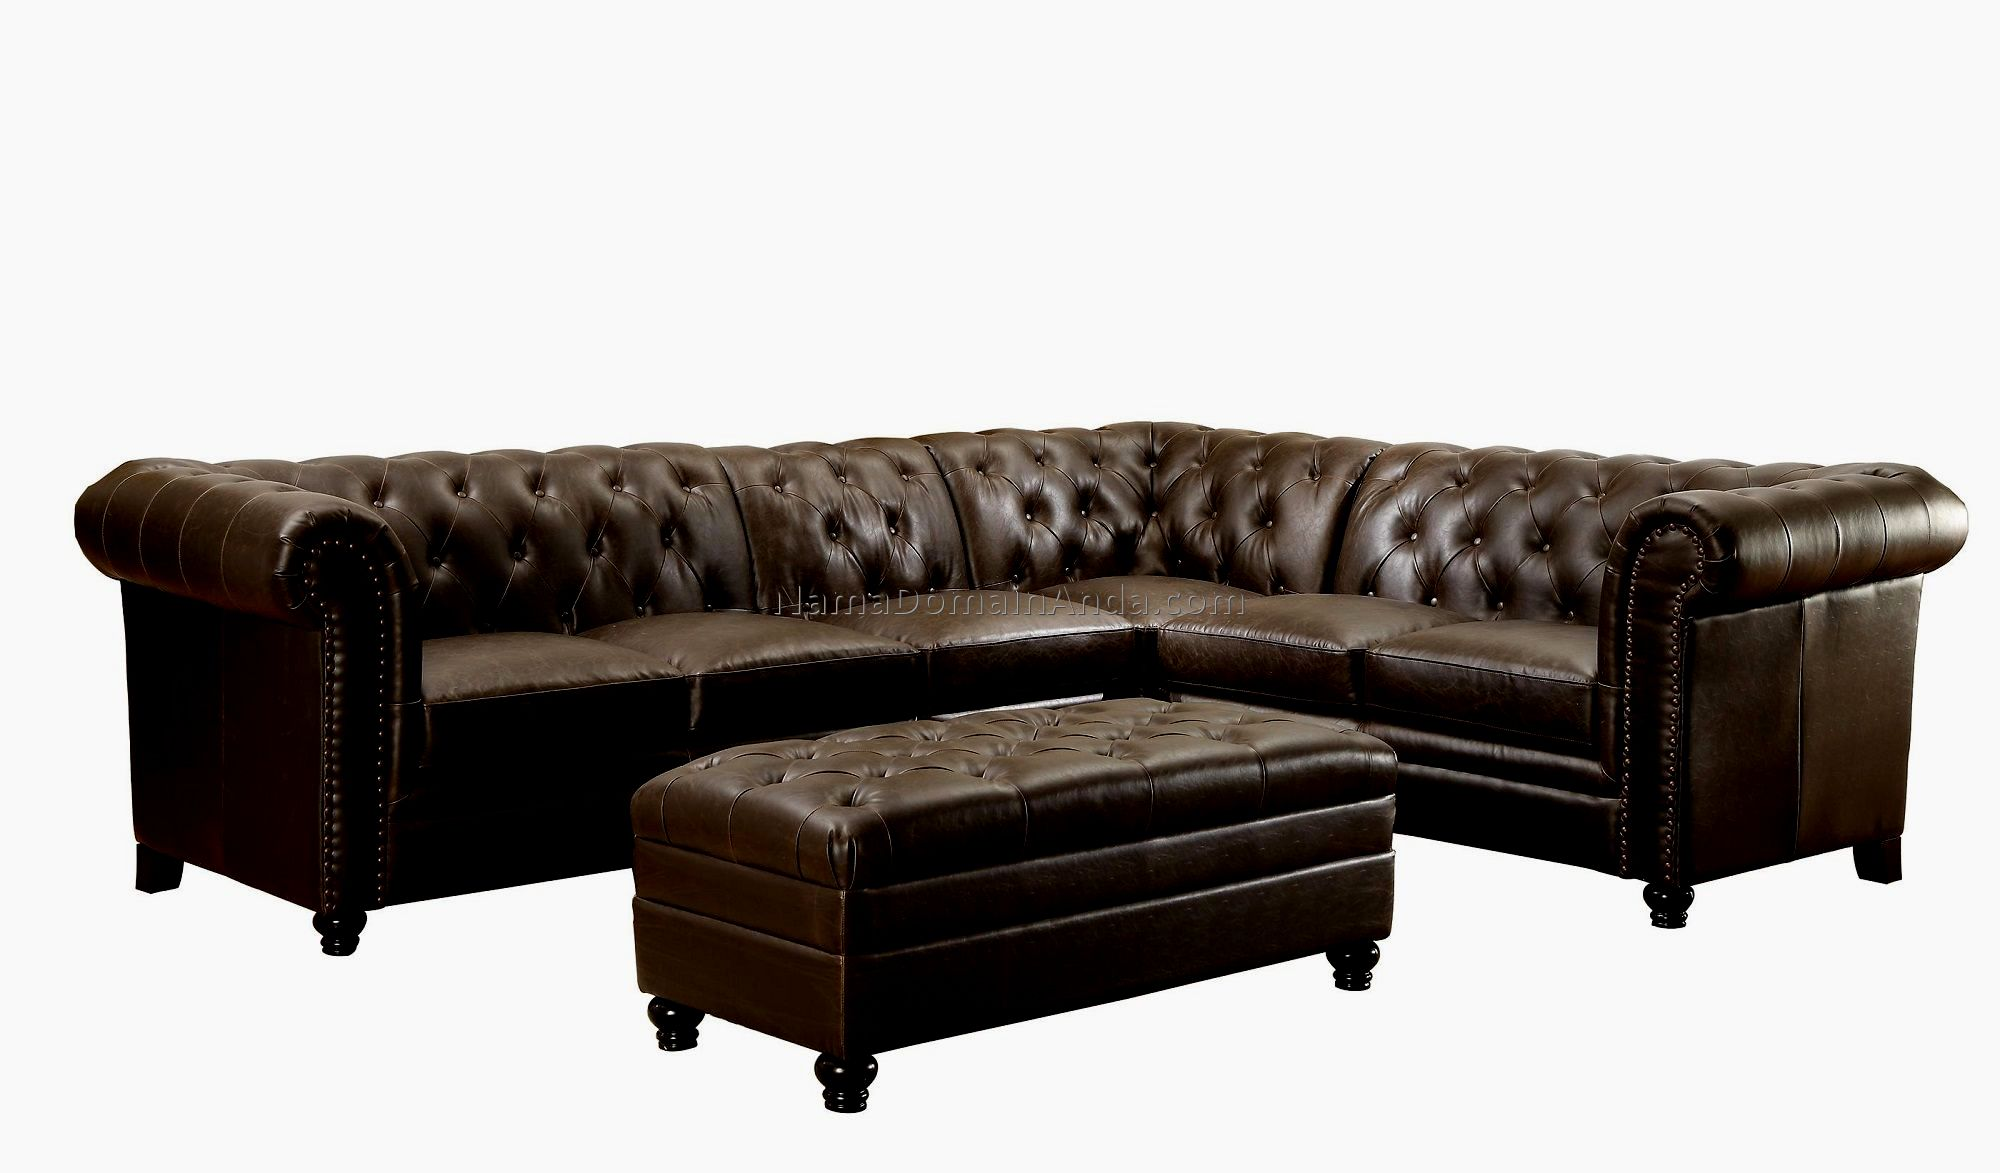 fancy tufted leather sofa set decoration-Excellent Tufted Leather sofa Set Wallpaper